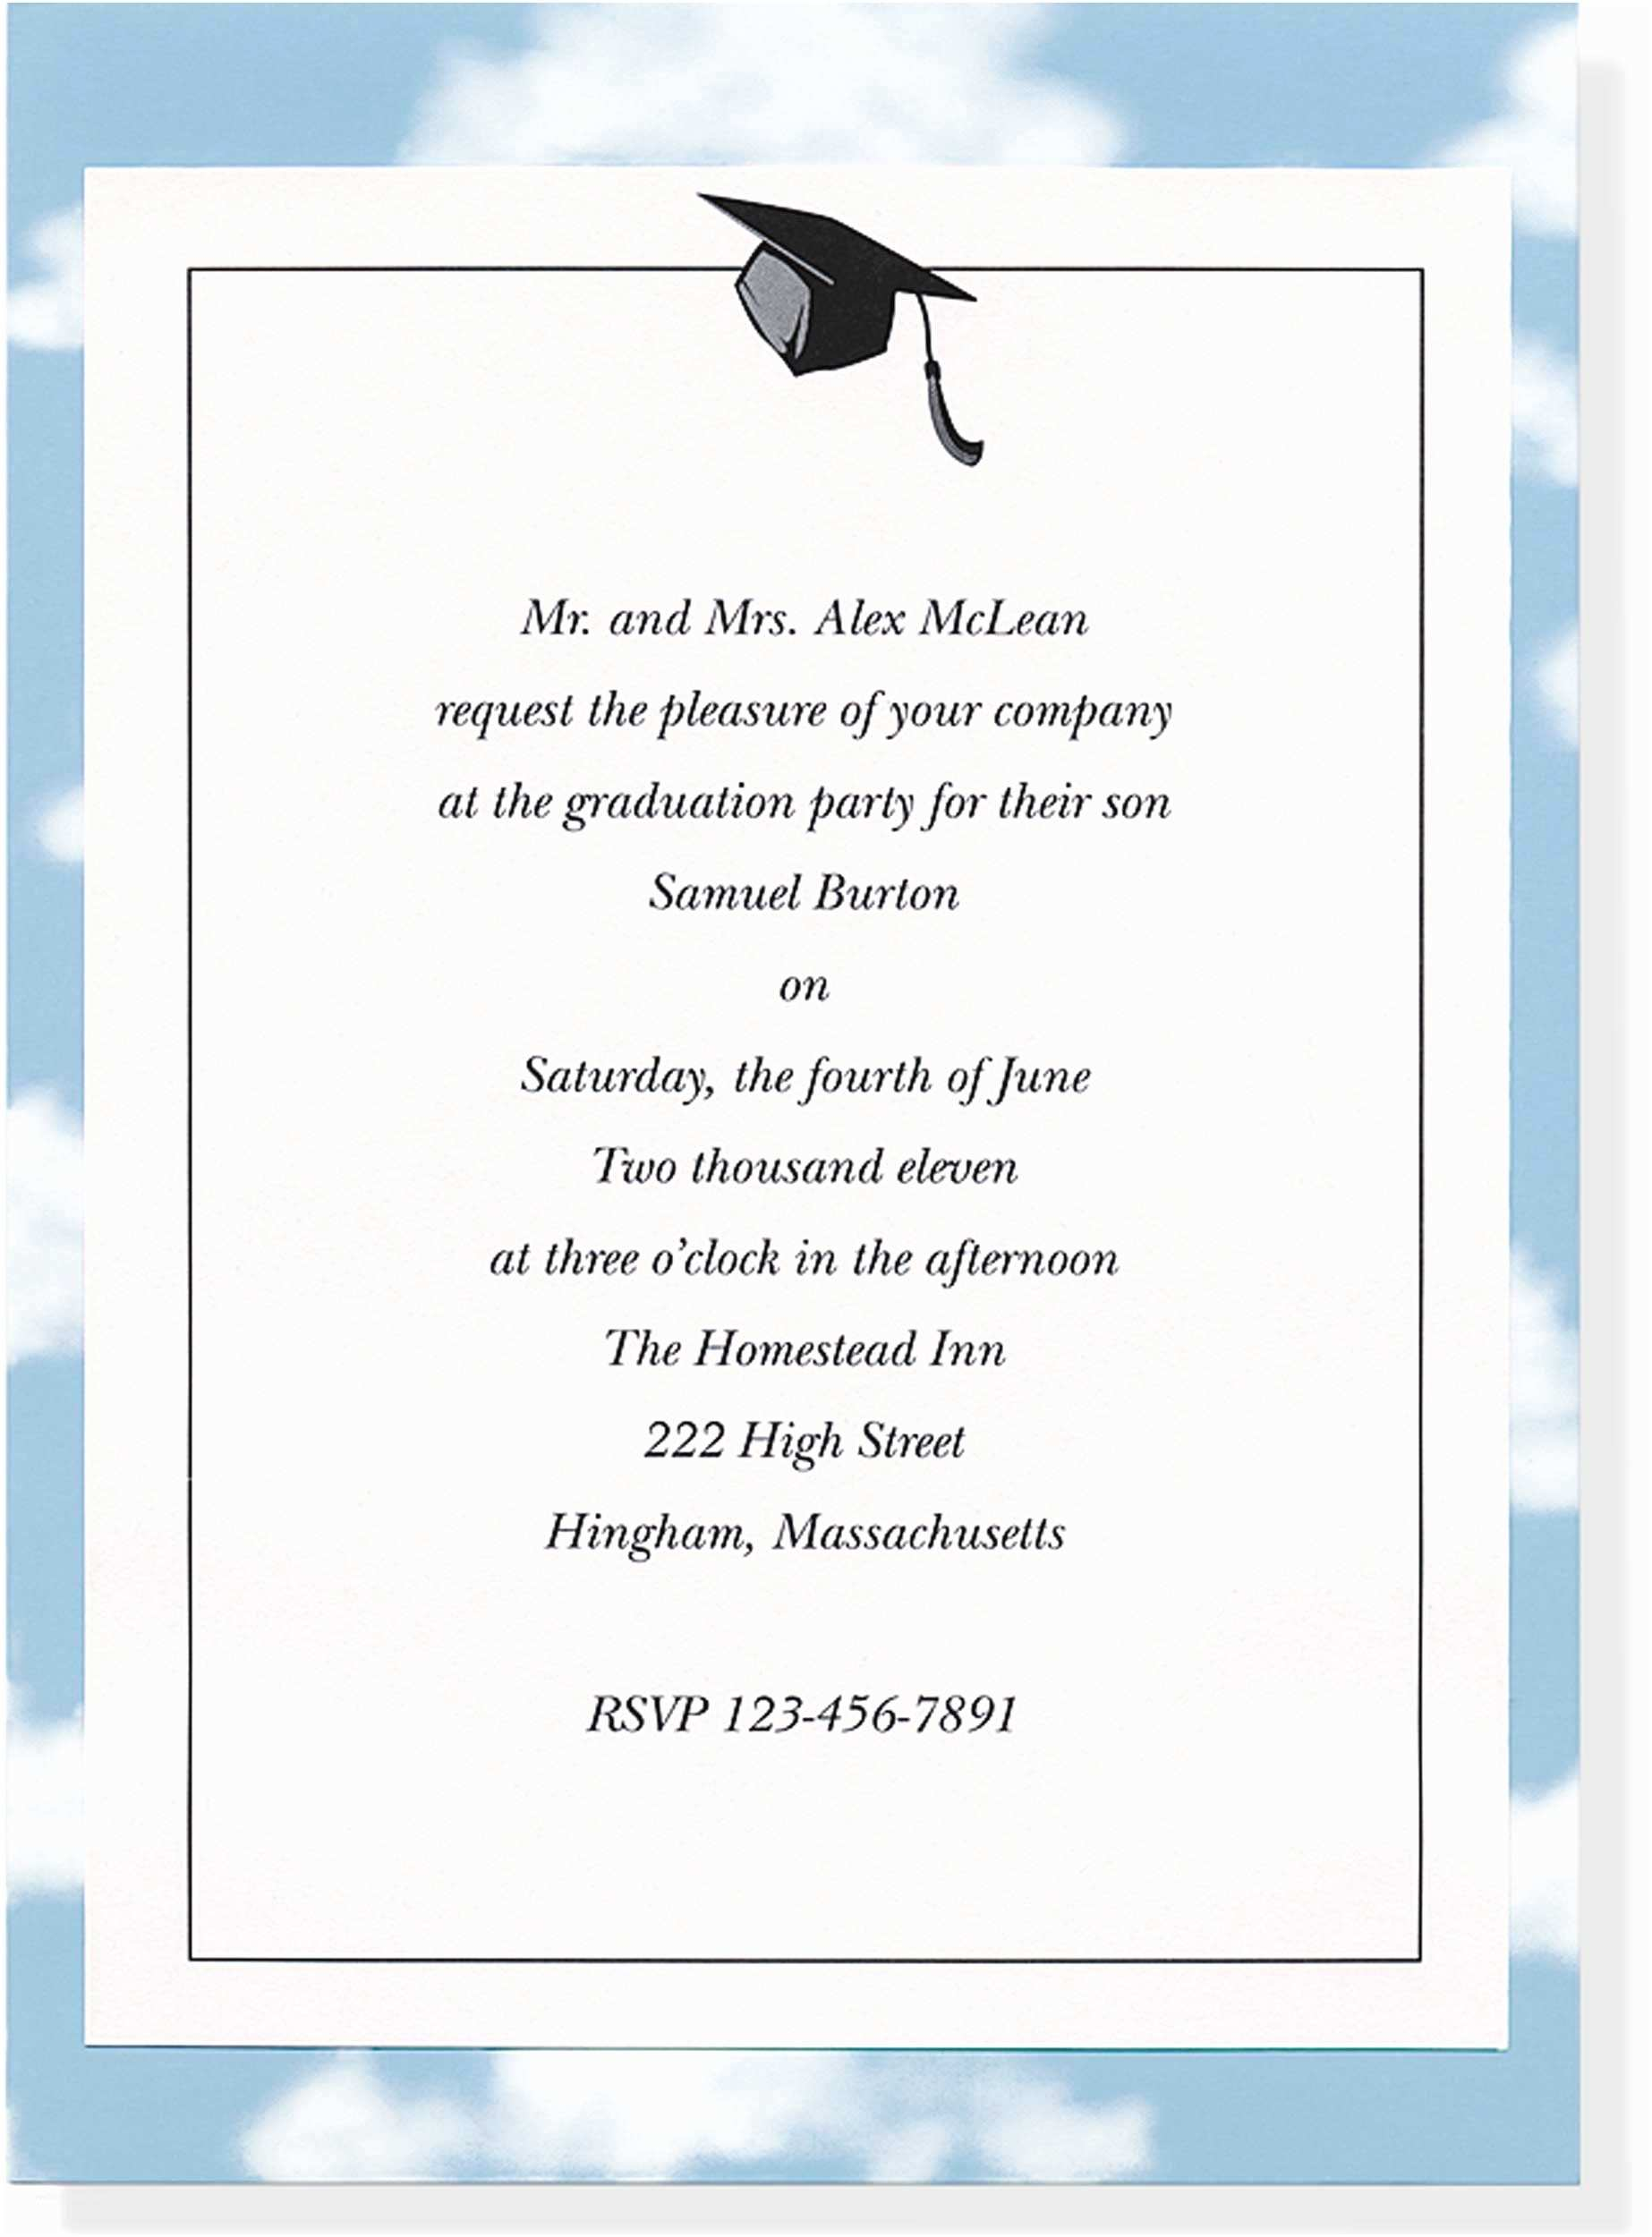 College Graduation Invitation Templates Sample Invitations for Graduation Brown Wedding and